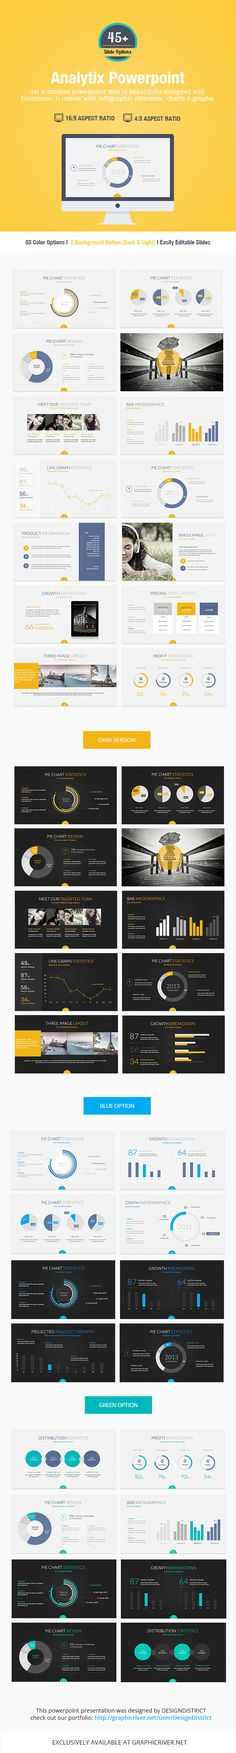 Analytix Powerpoint Presentation - Business Powerpoint Templates